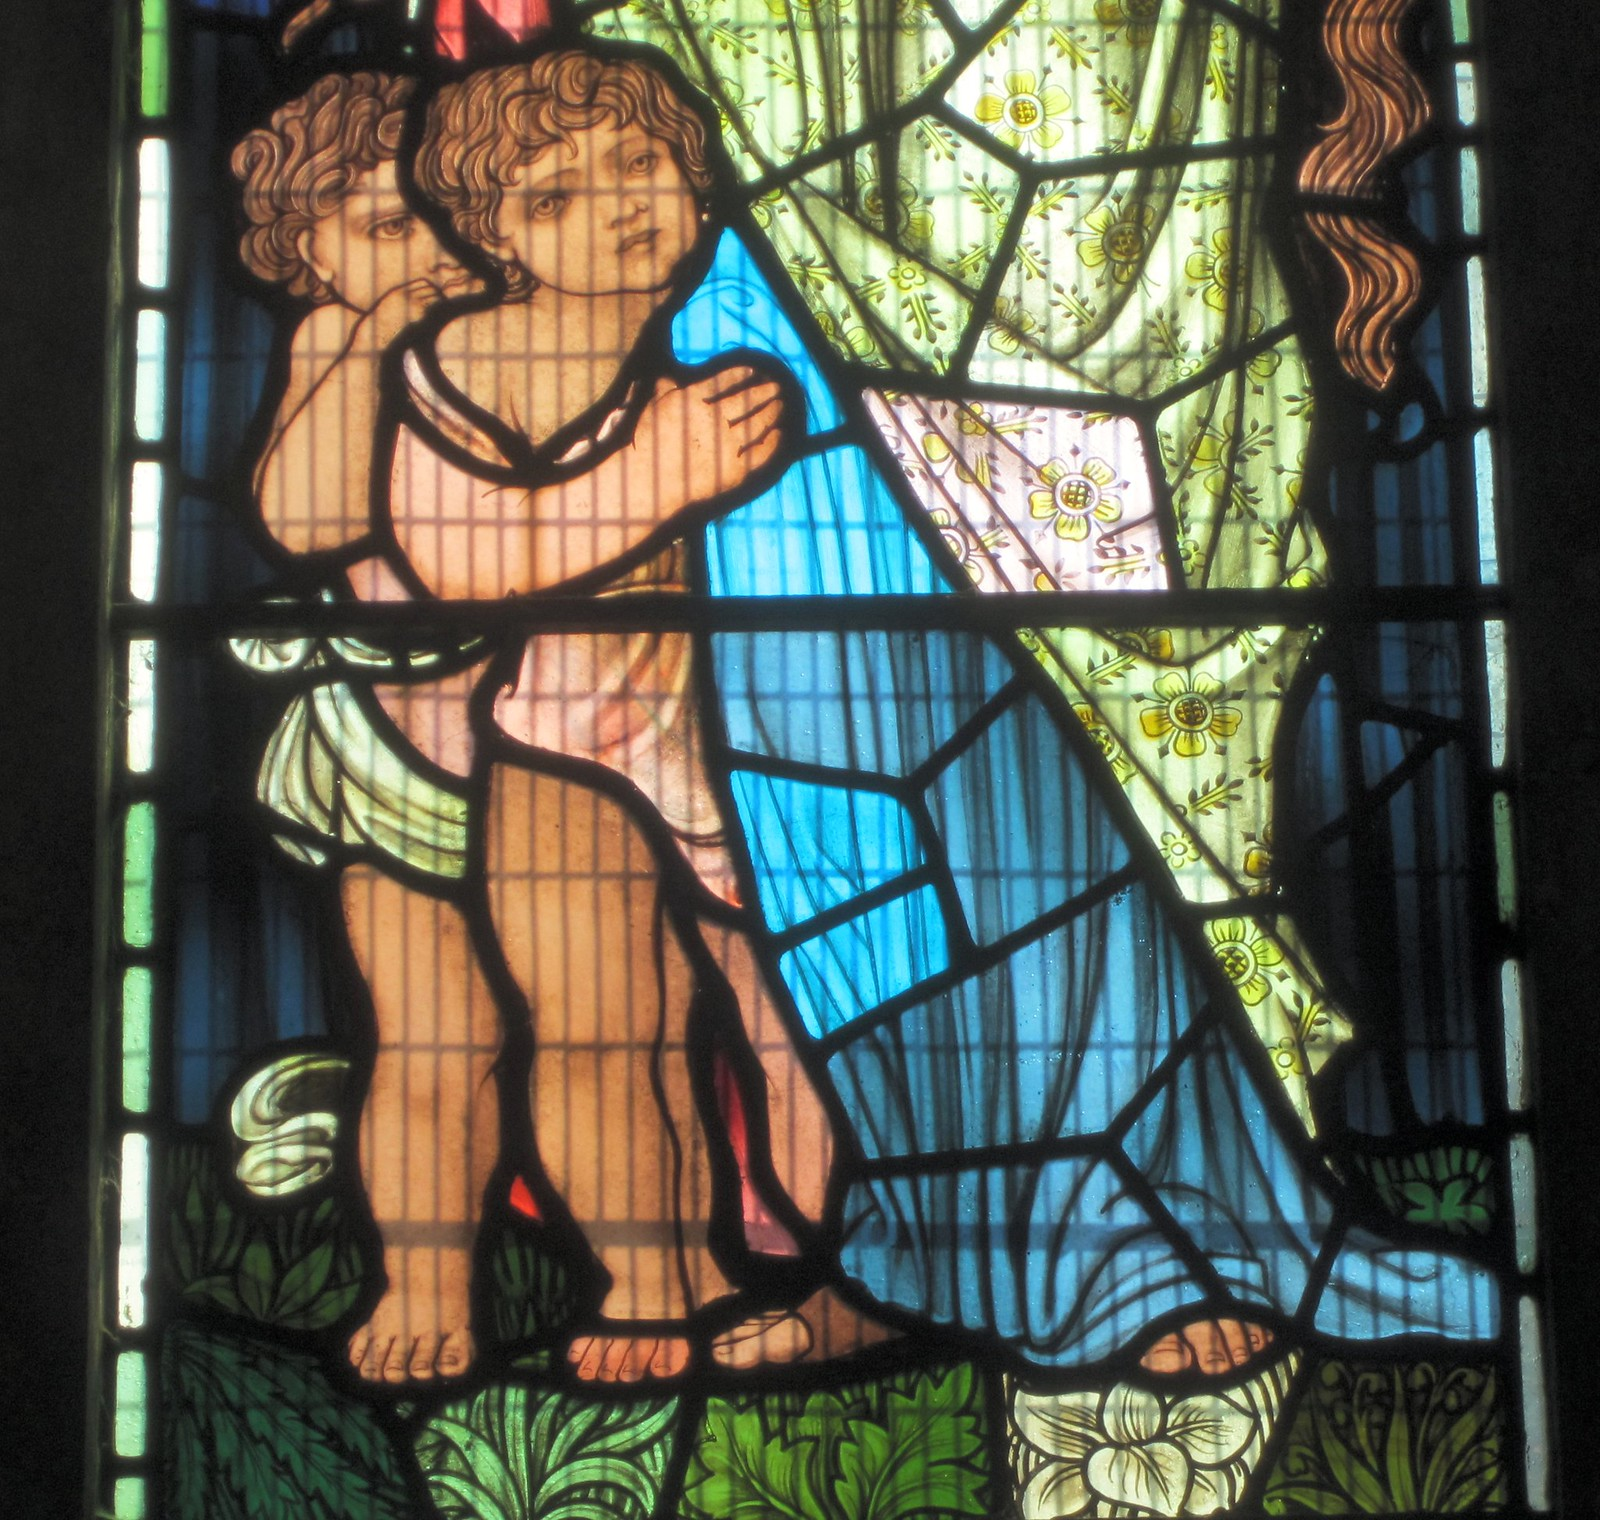 Burne-Jones Stained Glass